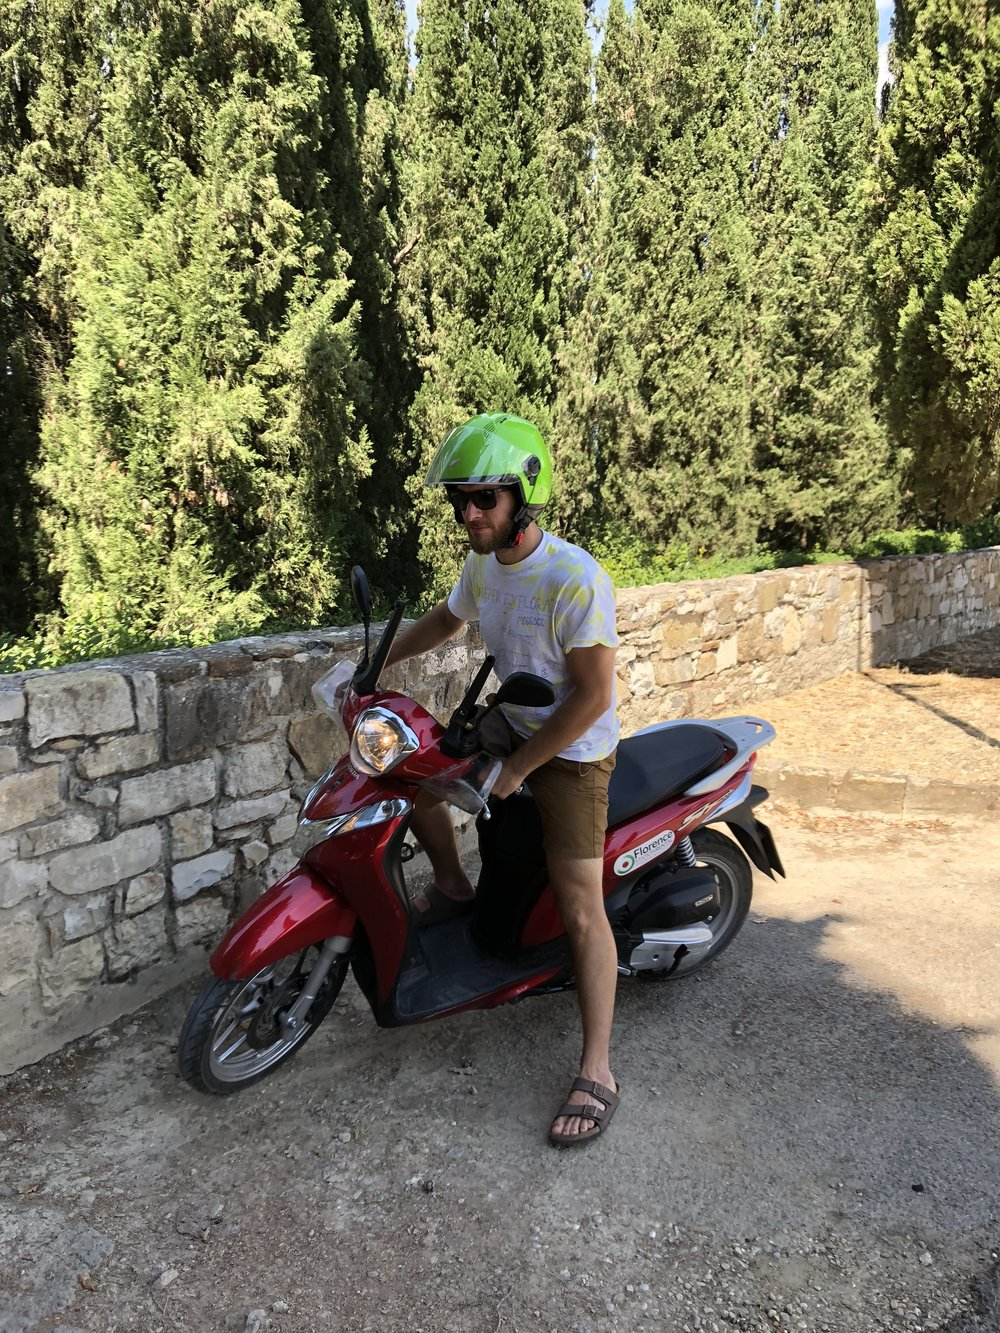 We rented a scooter for 3 days. We did a ton of cruising! 260km total, but we only used $6 in gas. I think West End needs one of these. I'm already planning...